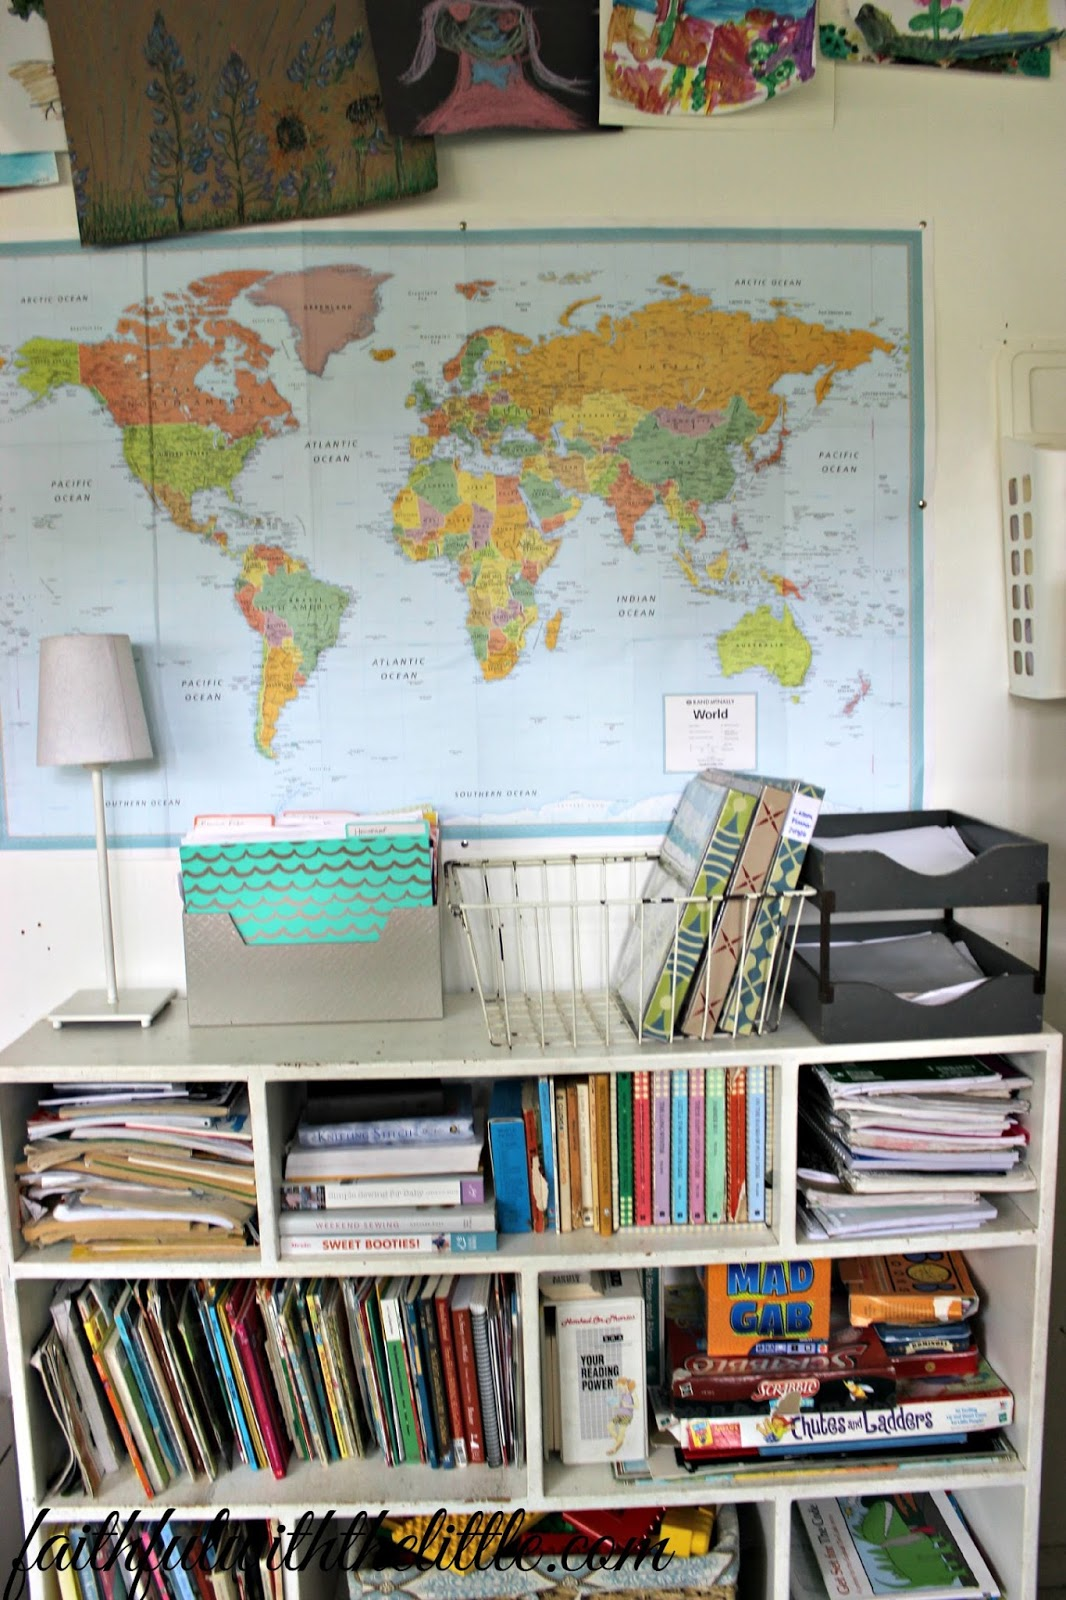 Faithful with the little our homeschool room we dont have a lot of wall space which is frustrating at times but i made sure to hang a world map on the one wall that we do have open gumiabroncs Images